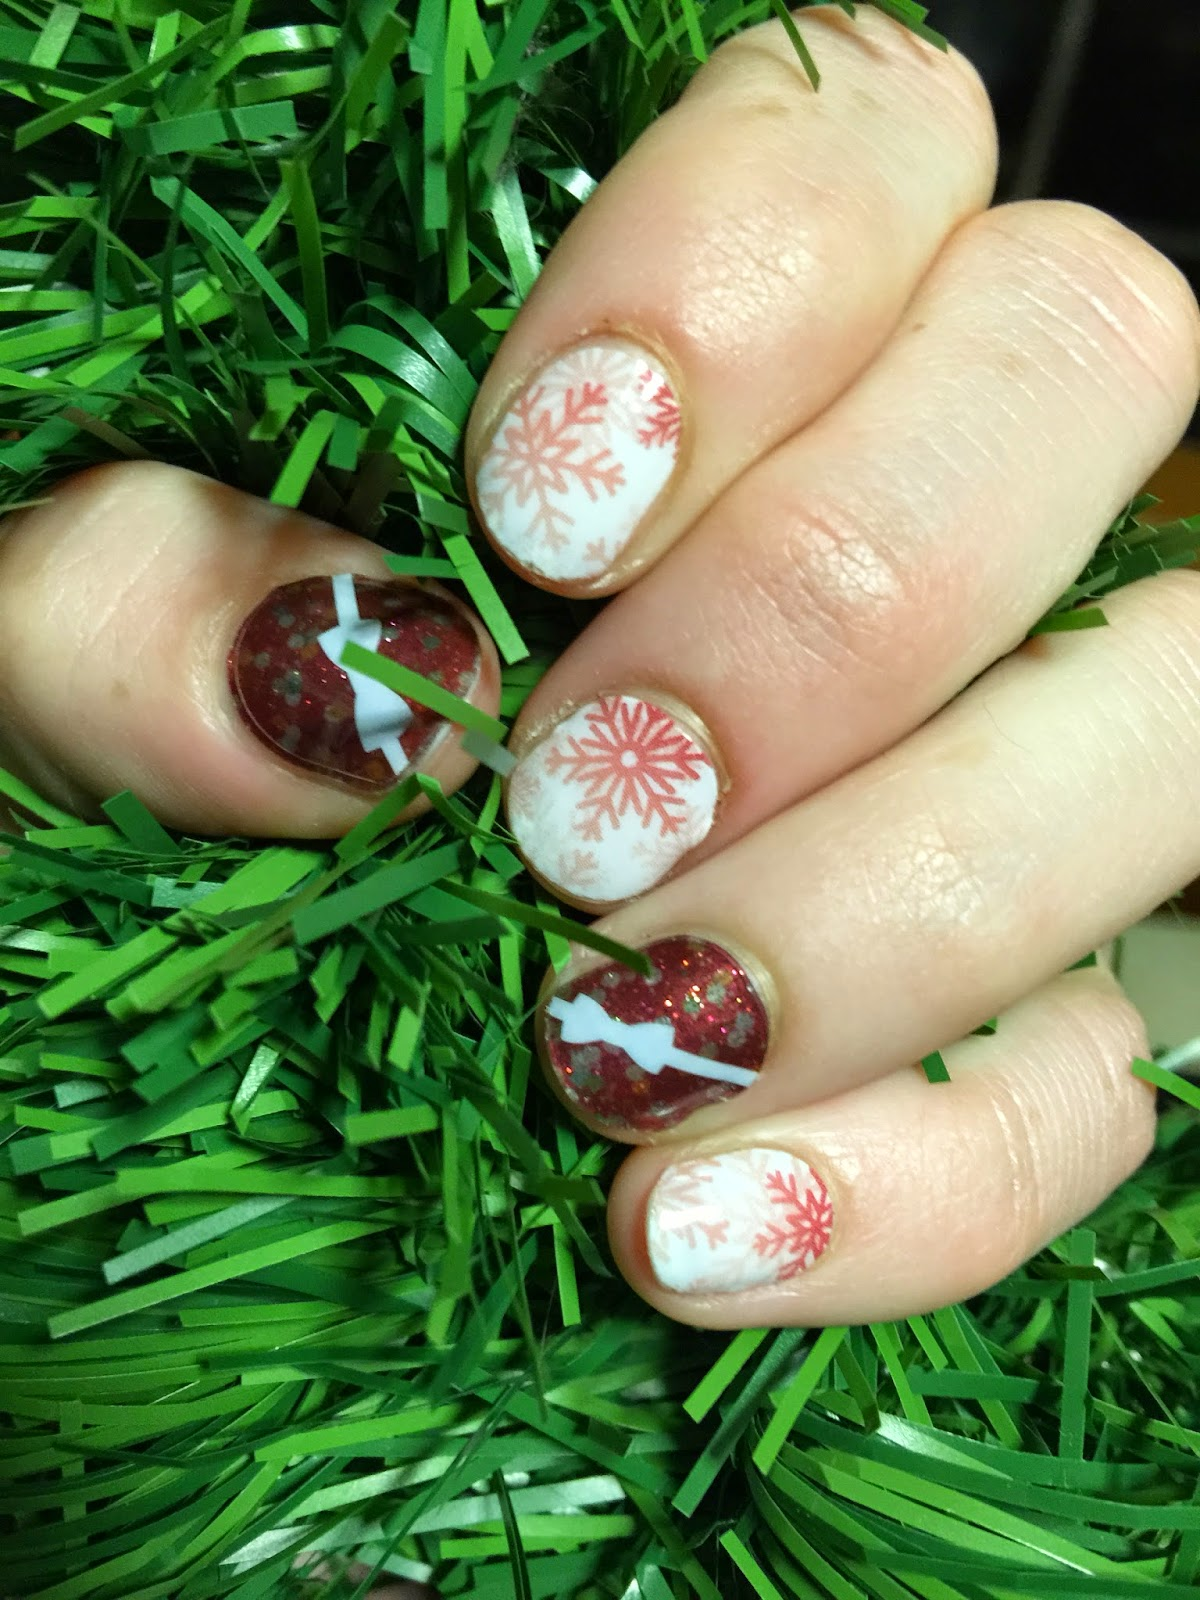 Jamberry Nails, Joyful Holiday, Christmas nail wraps, nail wraps, Christmas gifts, gift boxes, nail art, nail wraps